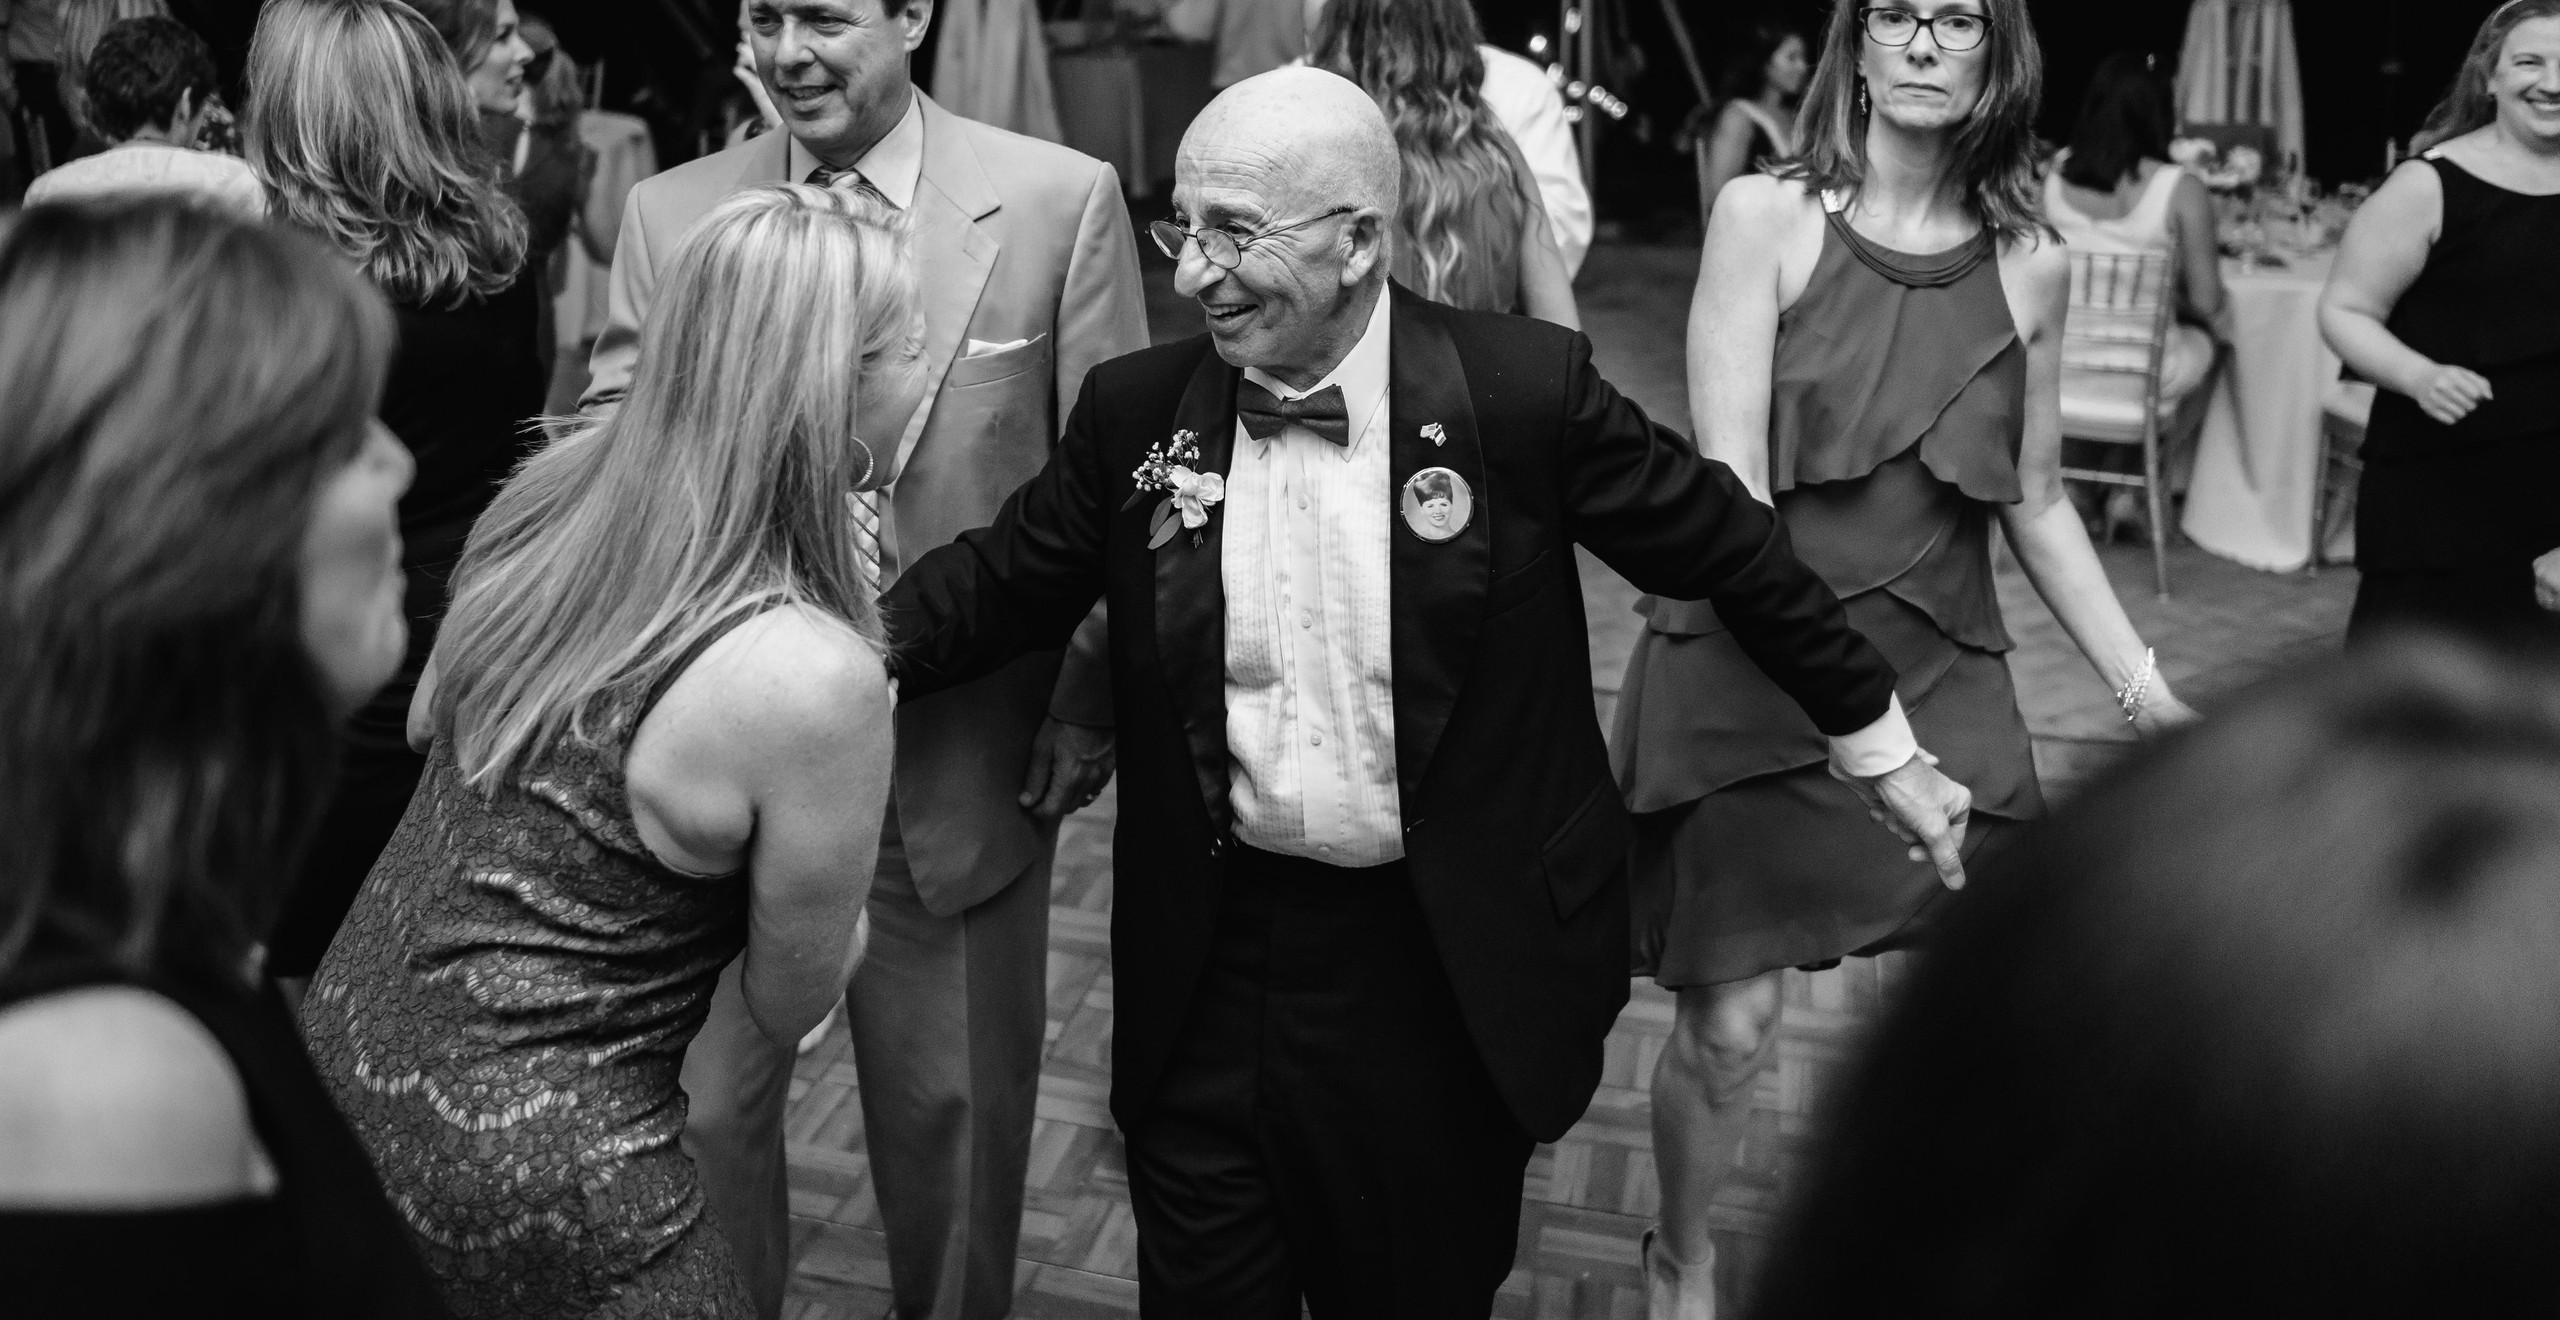 grandfather dancing with guests at wedding